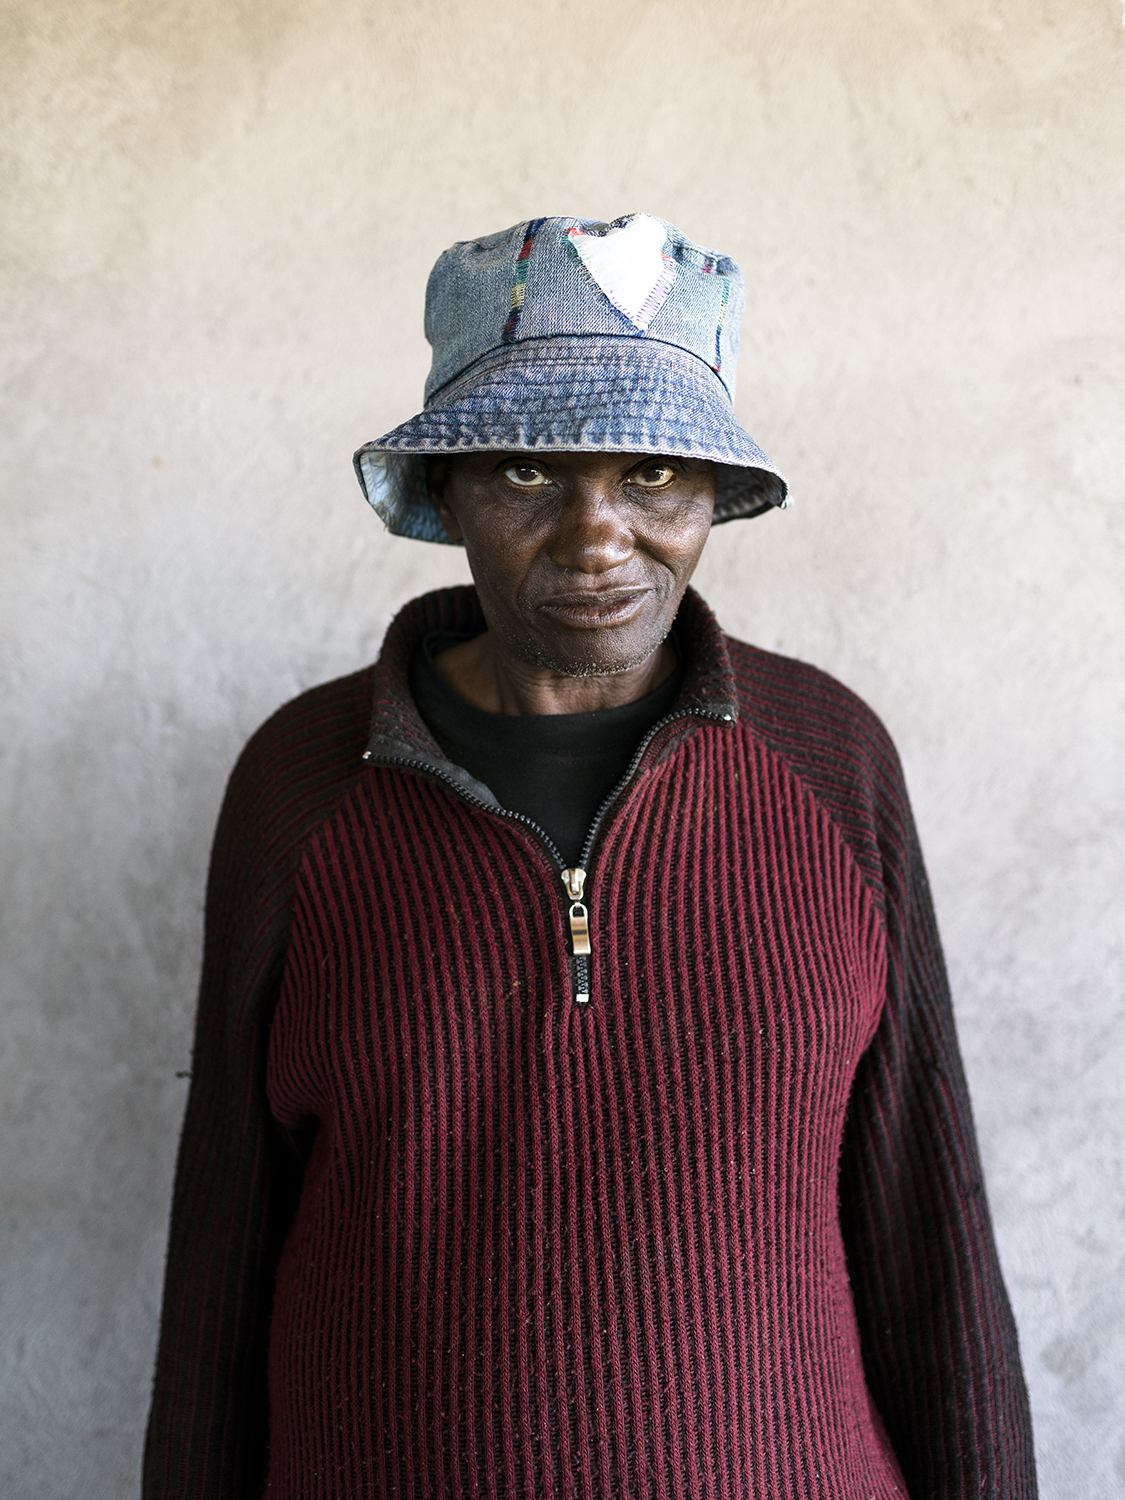 Philemon Mabiletse, 70, currently owns 0 head of cattle – 20 dead, 0 miscarriages